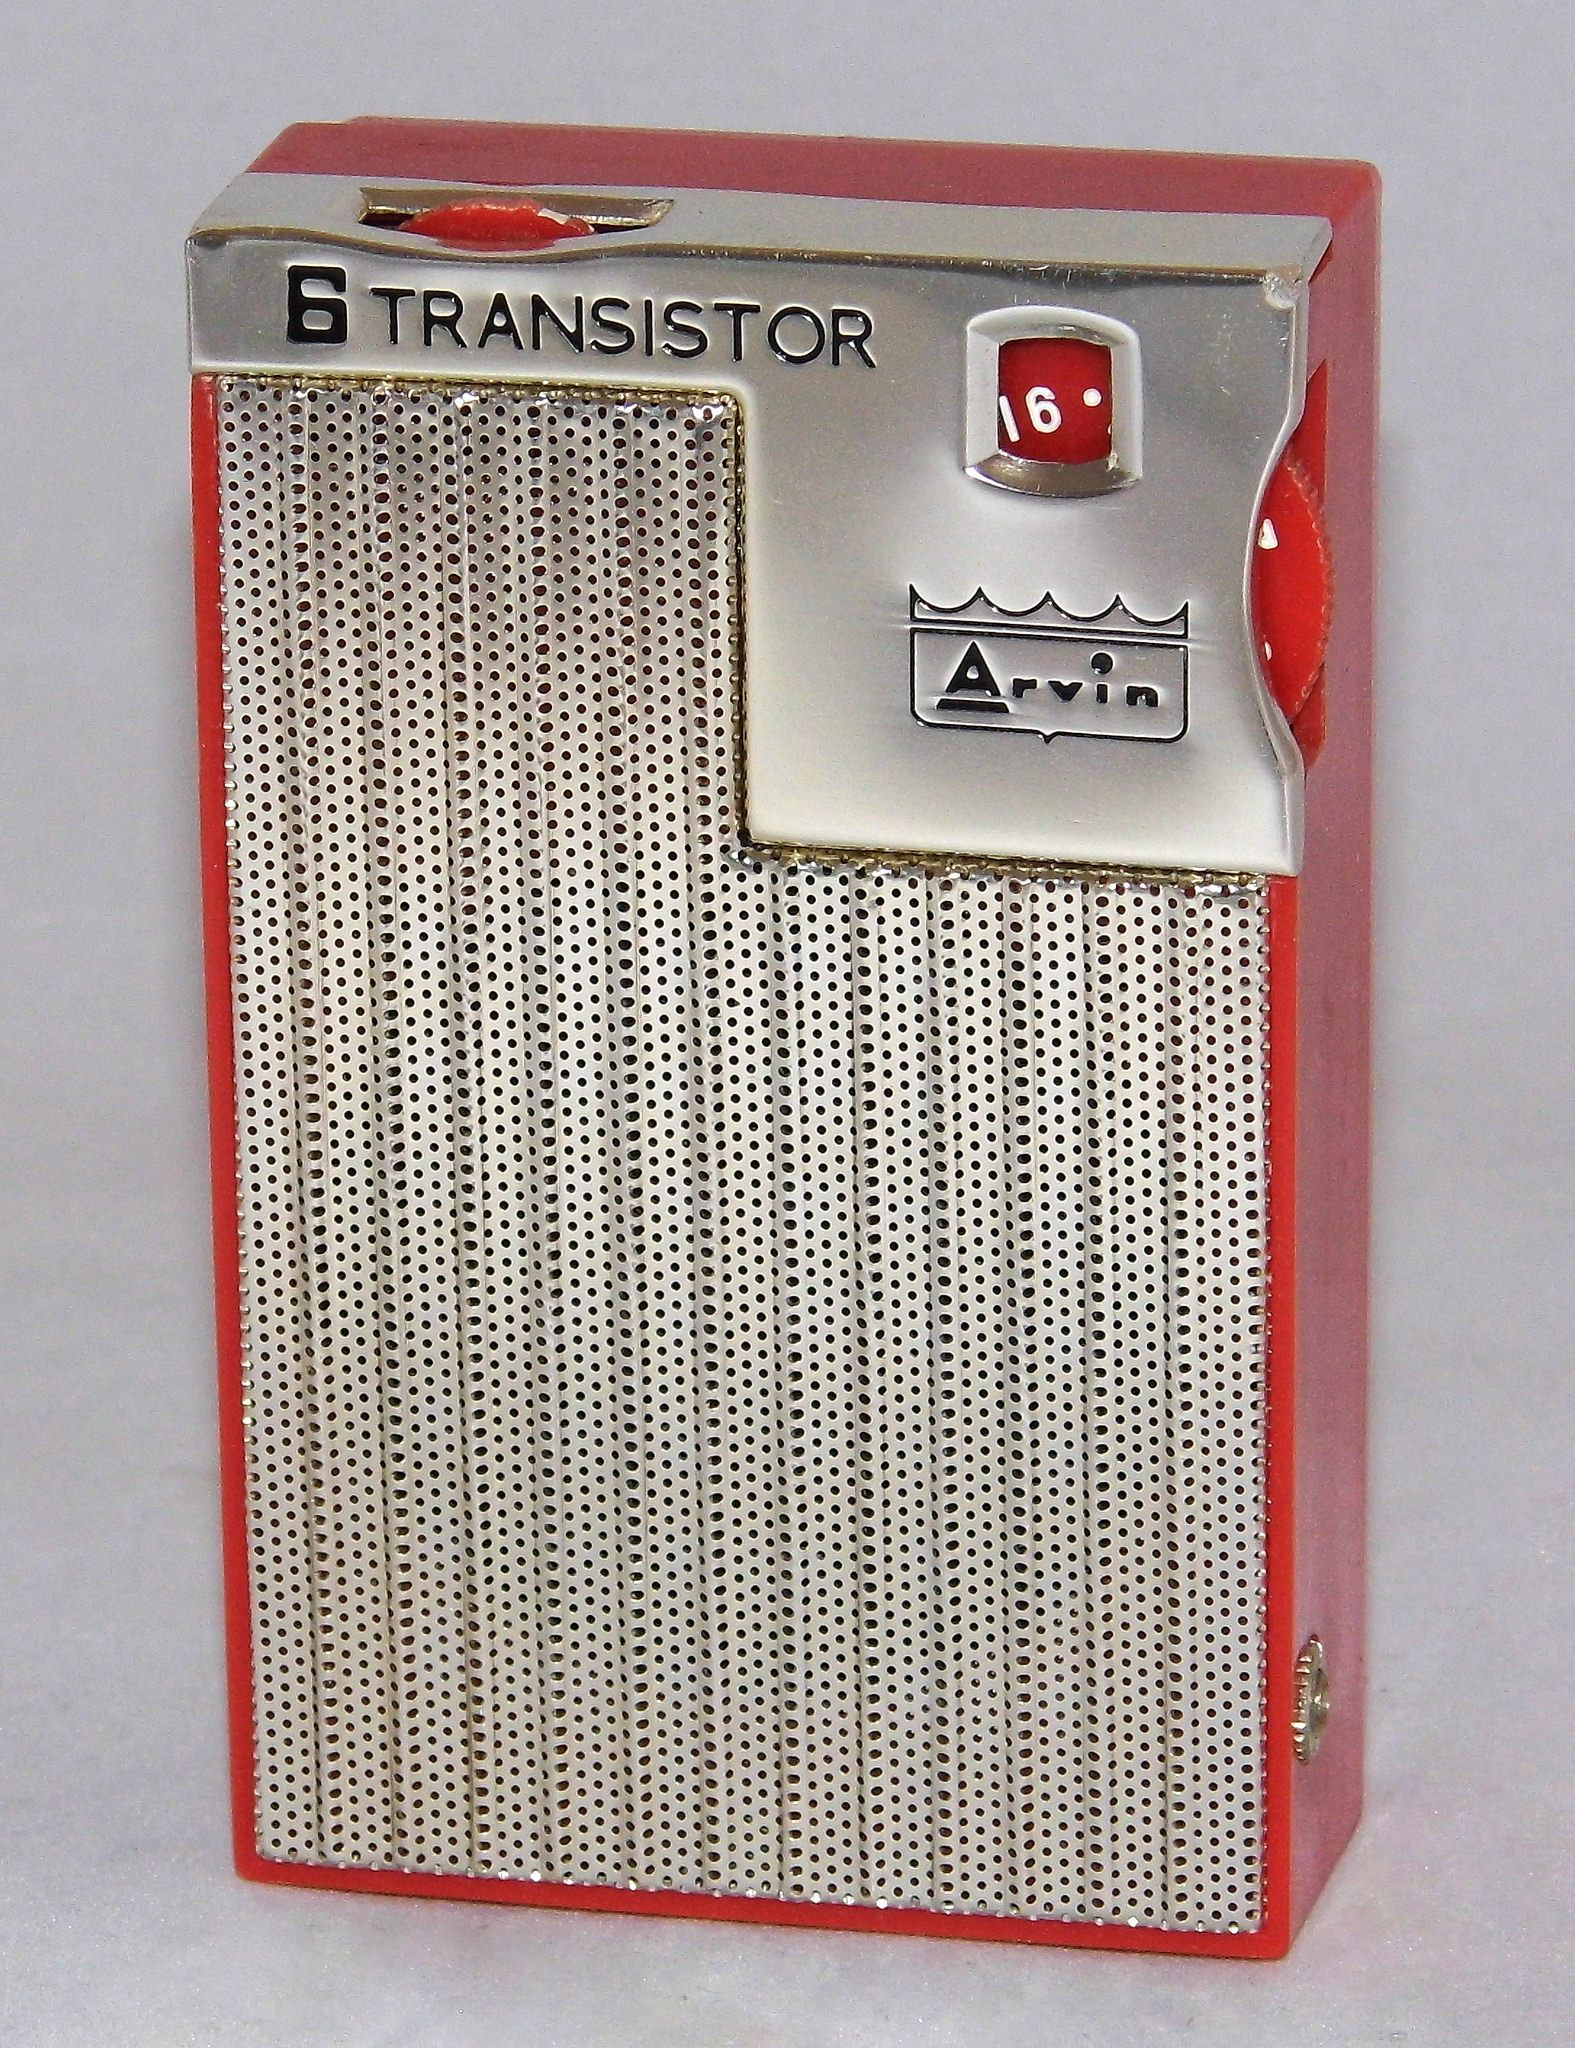 https://flic.kr/p/AHcHYW | Vintage Arvin 6-Transistor AM Radio, Model 64R03, Made In Japan, Circa 1960s